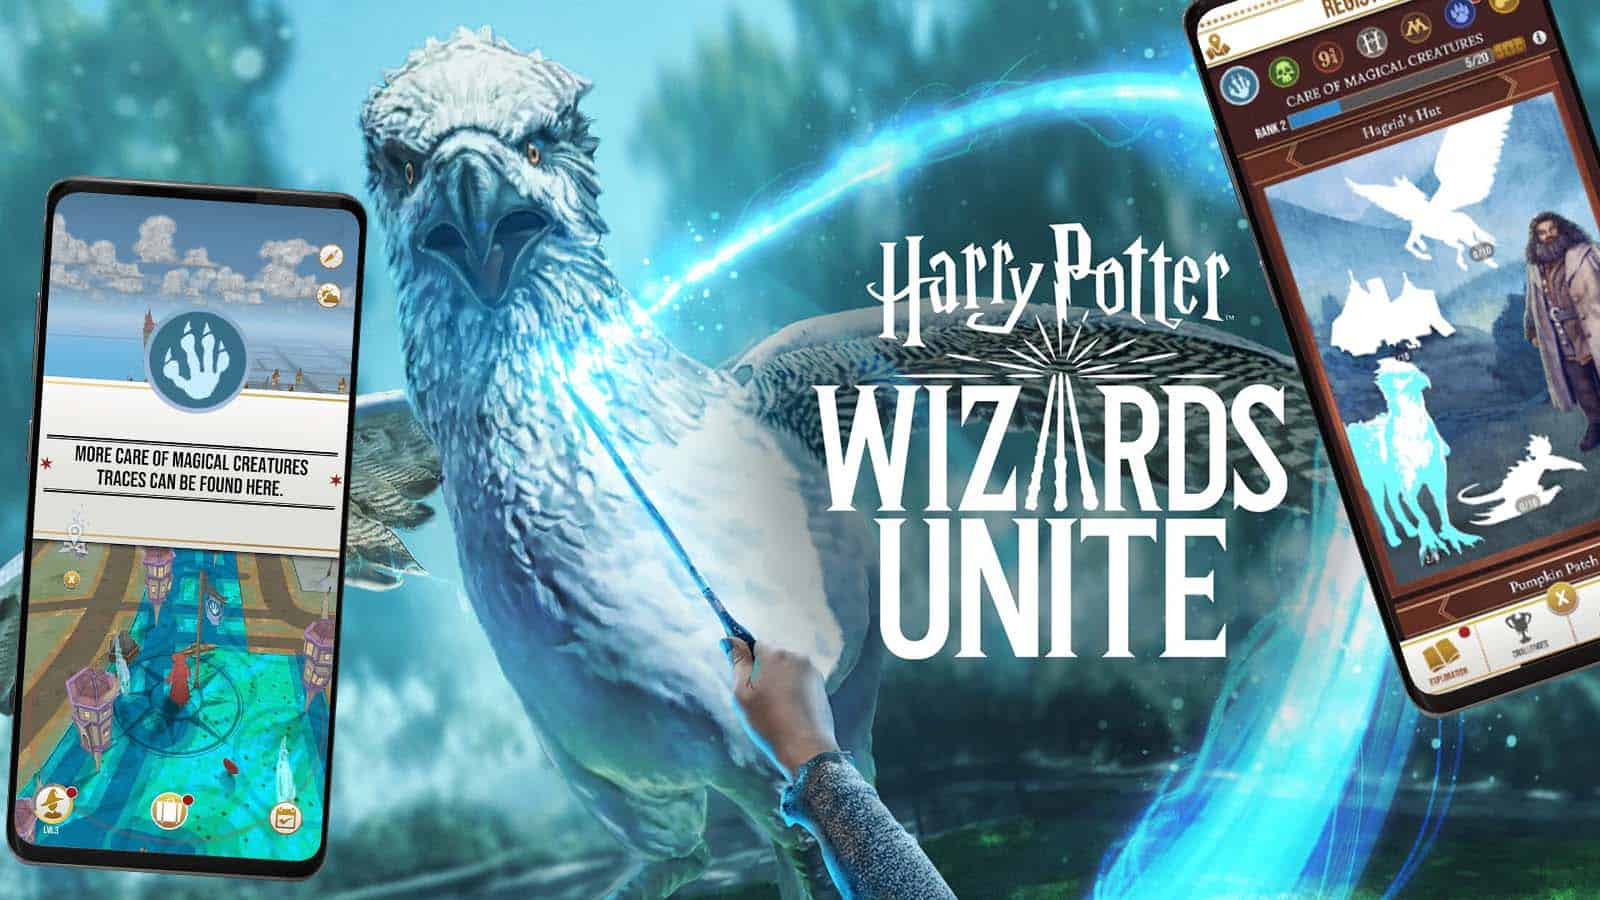 Harry Potter Wizards Unite Mockup Cover